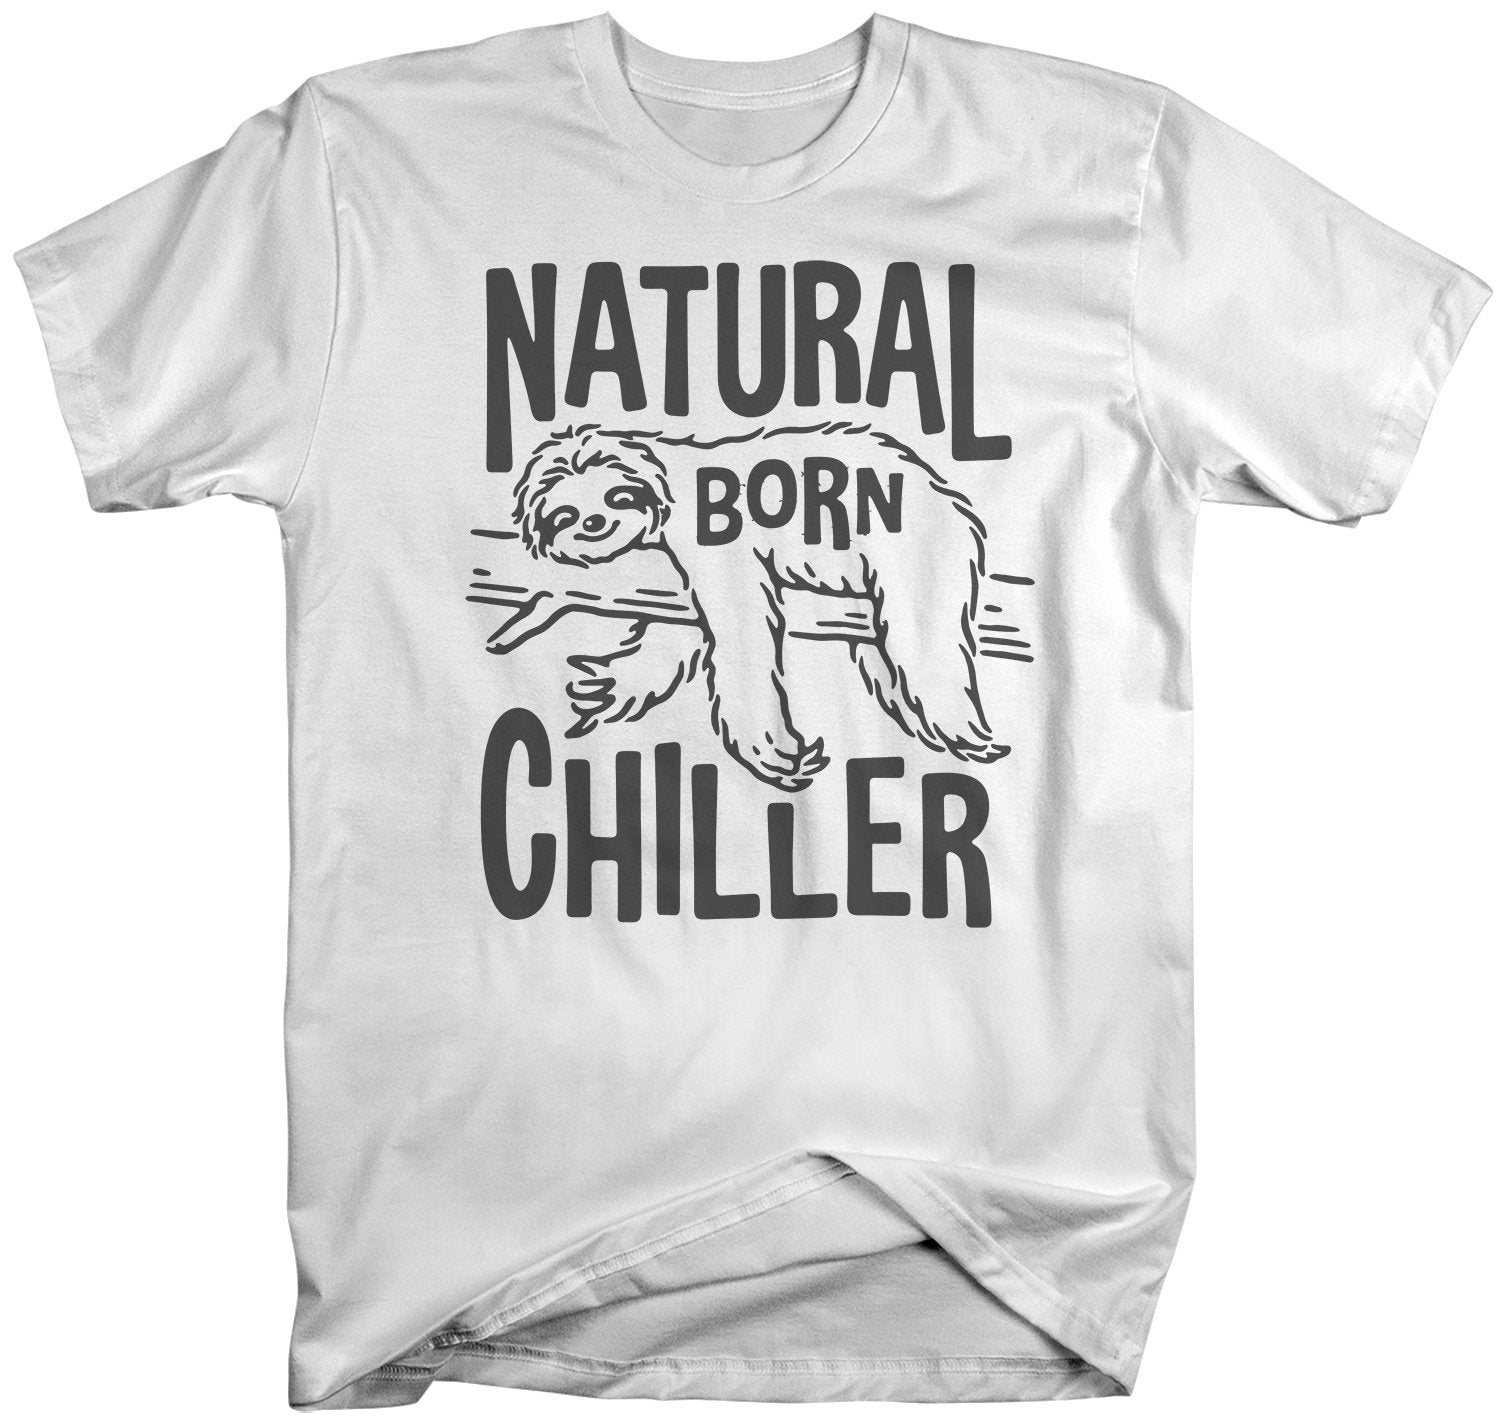 Chill Bro Sloth Animal Cool Hipster Funny Men Women Top Unisex T Shirt 1060